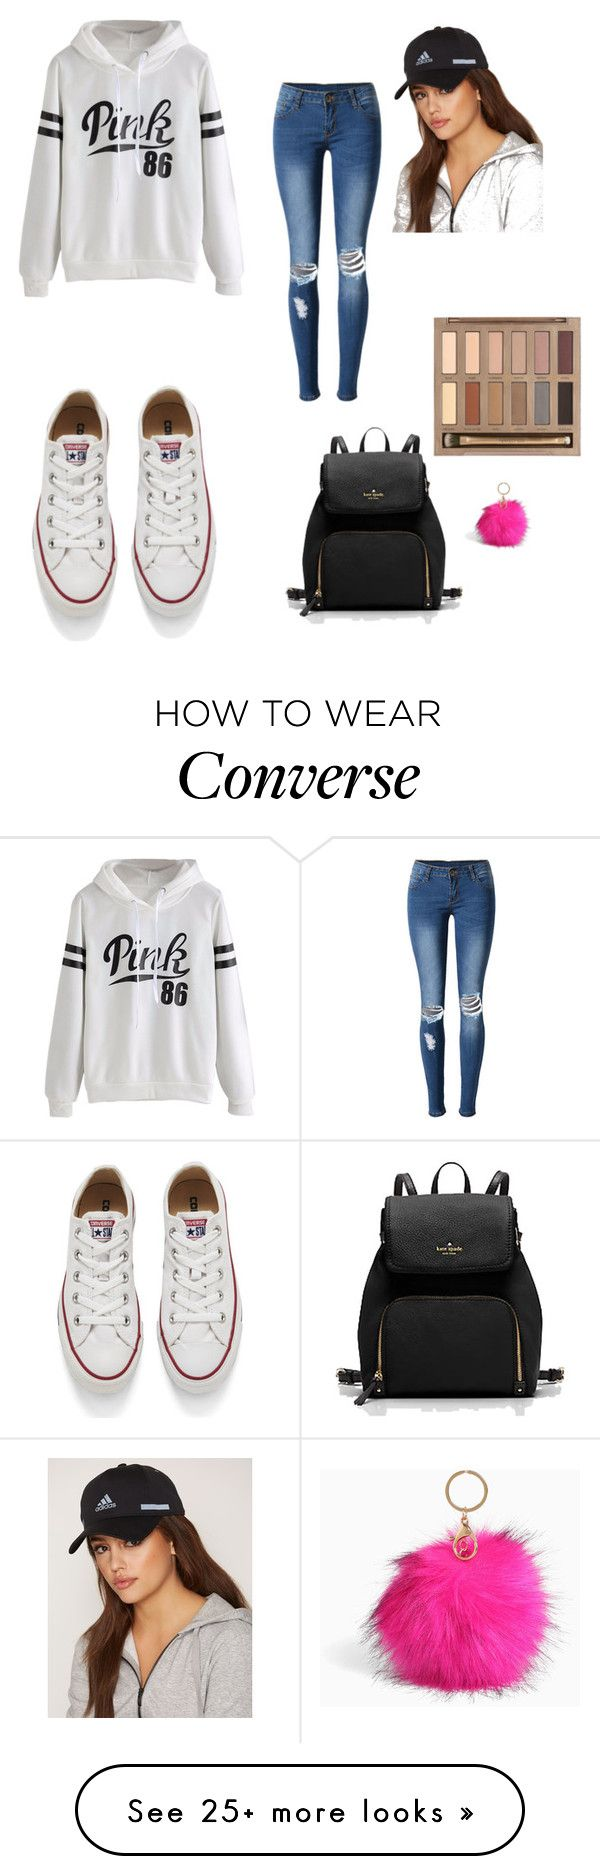 """New_post_24"" by emra-cehajic on Polyvore featuring Converse, WithChic, Urban Decay, Torrid and adidas"